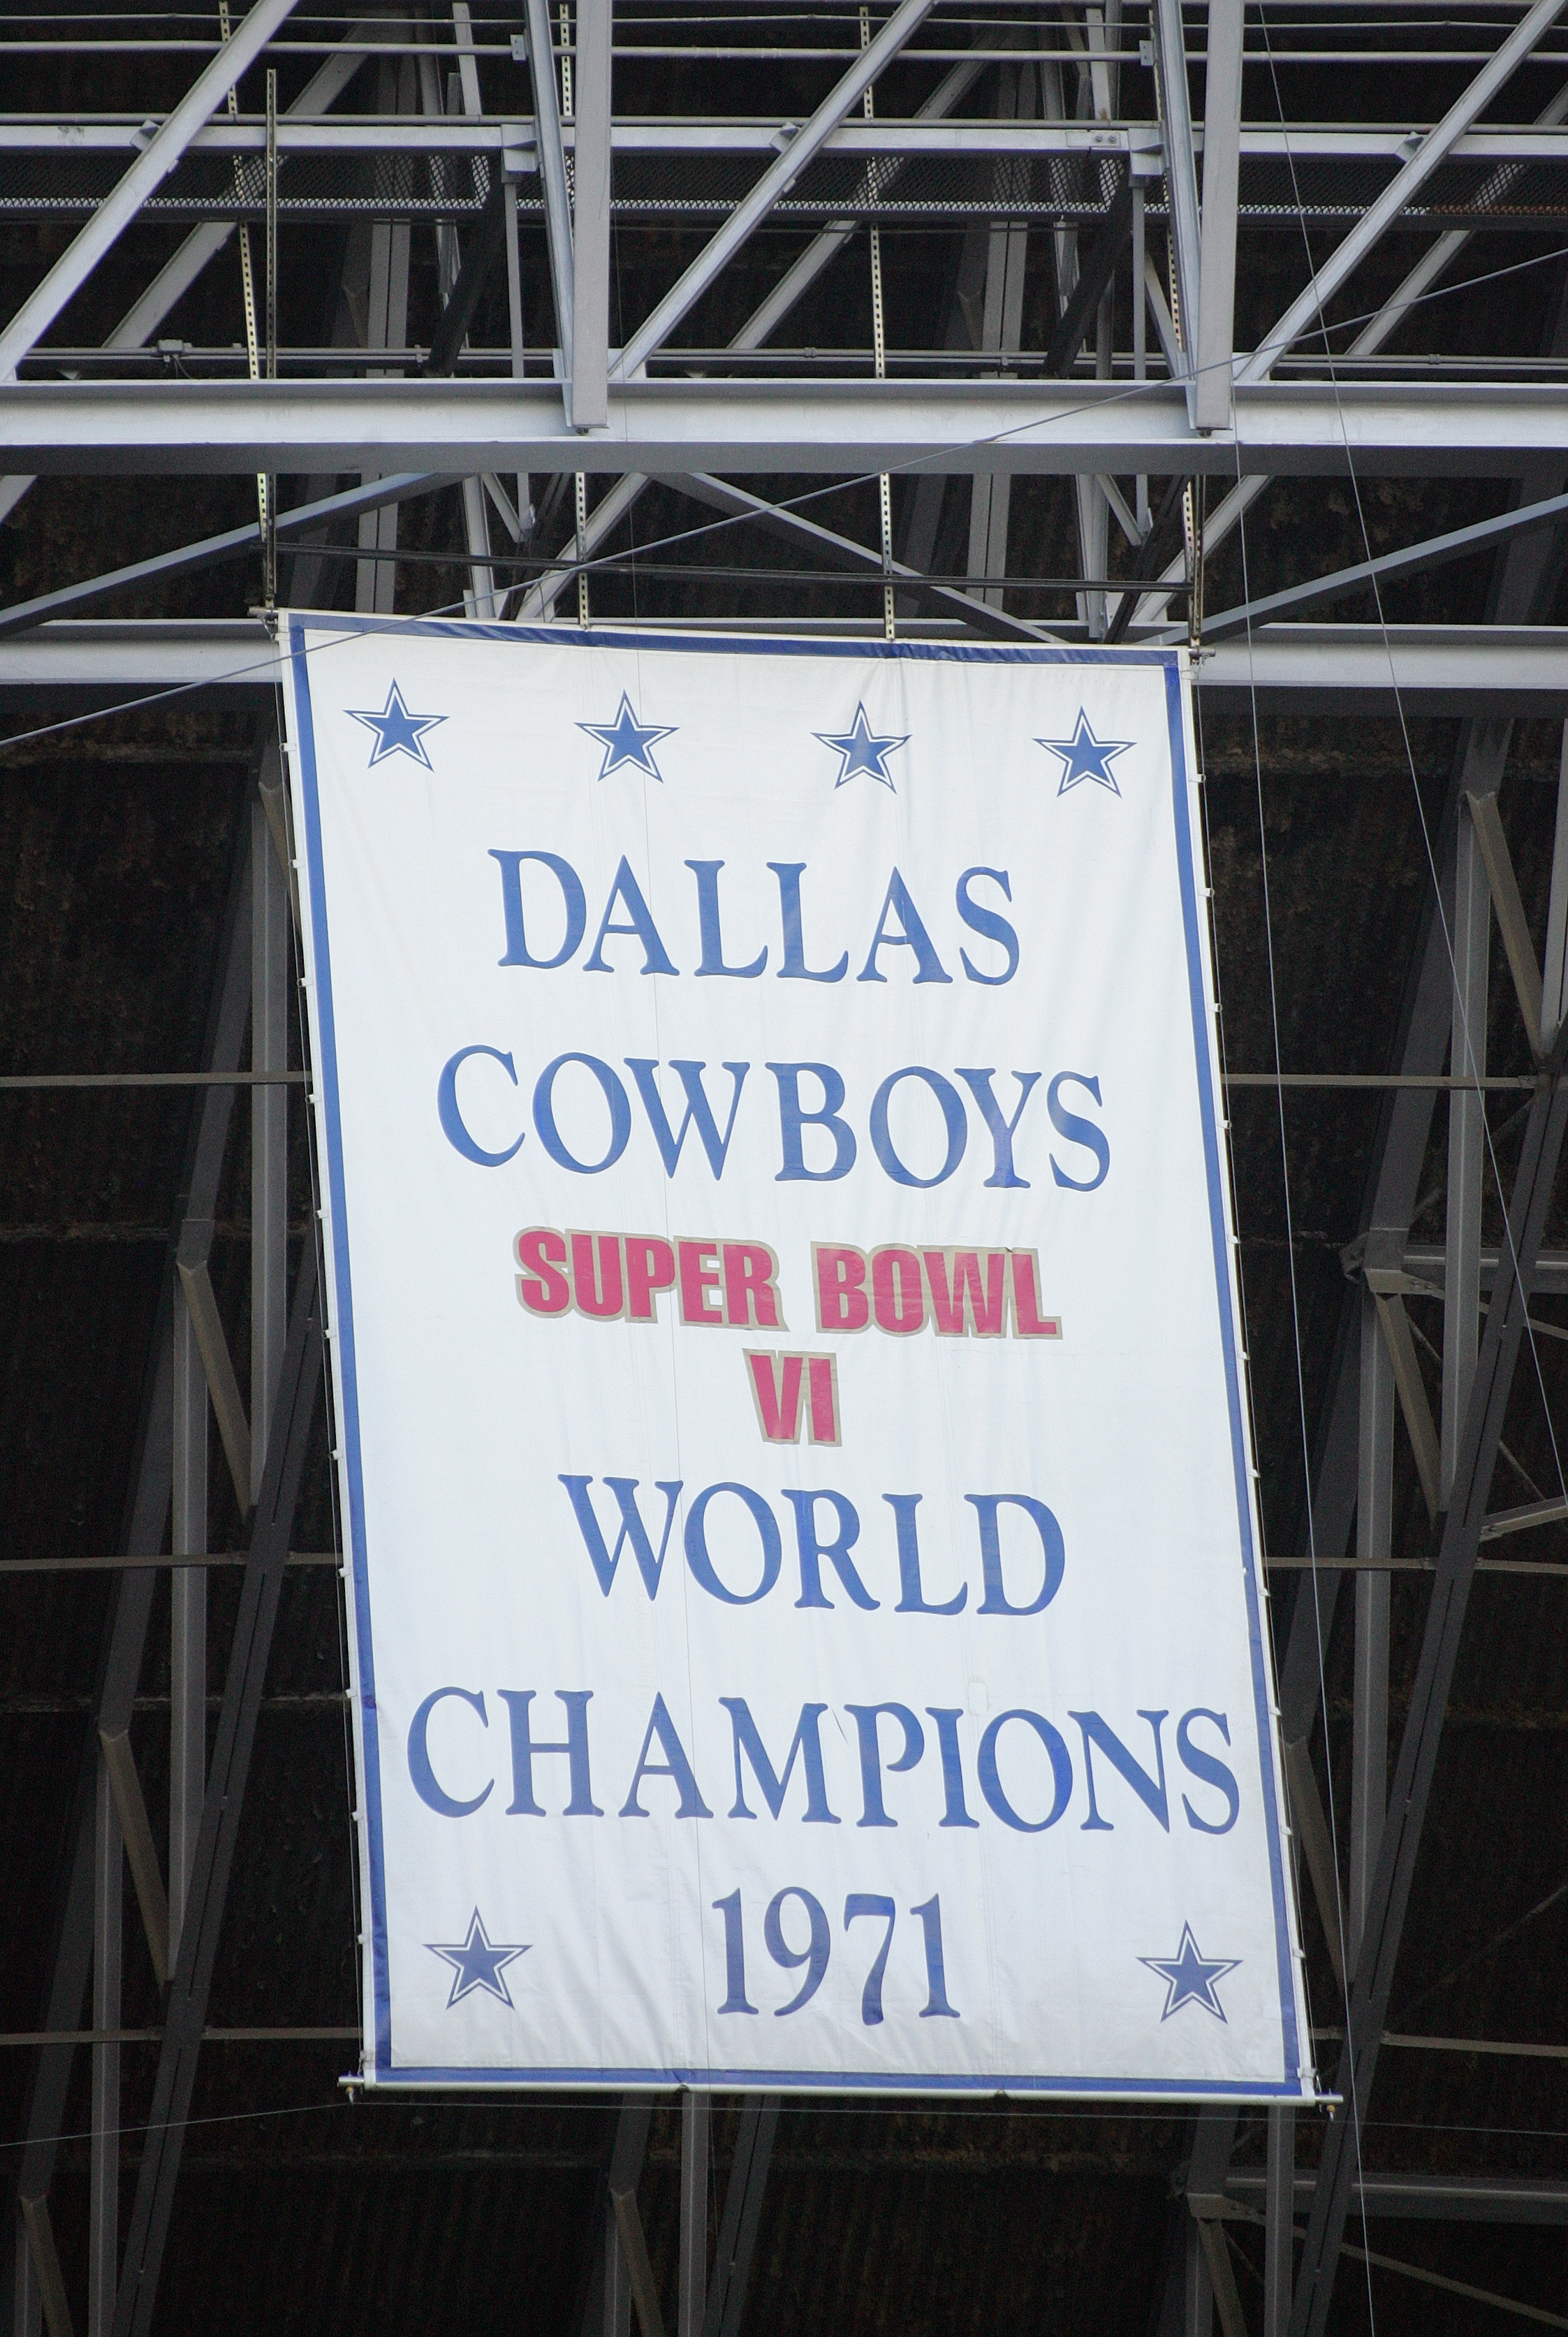 IRVING, TX - NOVEMBER 20:  A banner hangs from the rafters commemorating the 1971 Dallas Cowboys as Super Bowl VI Champions during the game between the Detroit Lions and the Dallas Cowboys on November 20, 2005 at Texas Stadium in Irving, Texas.  The Cowbo